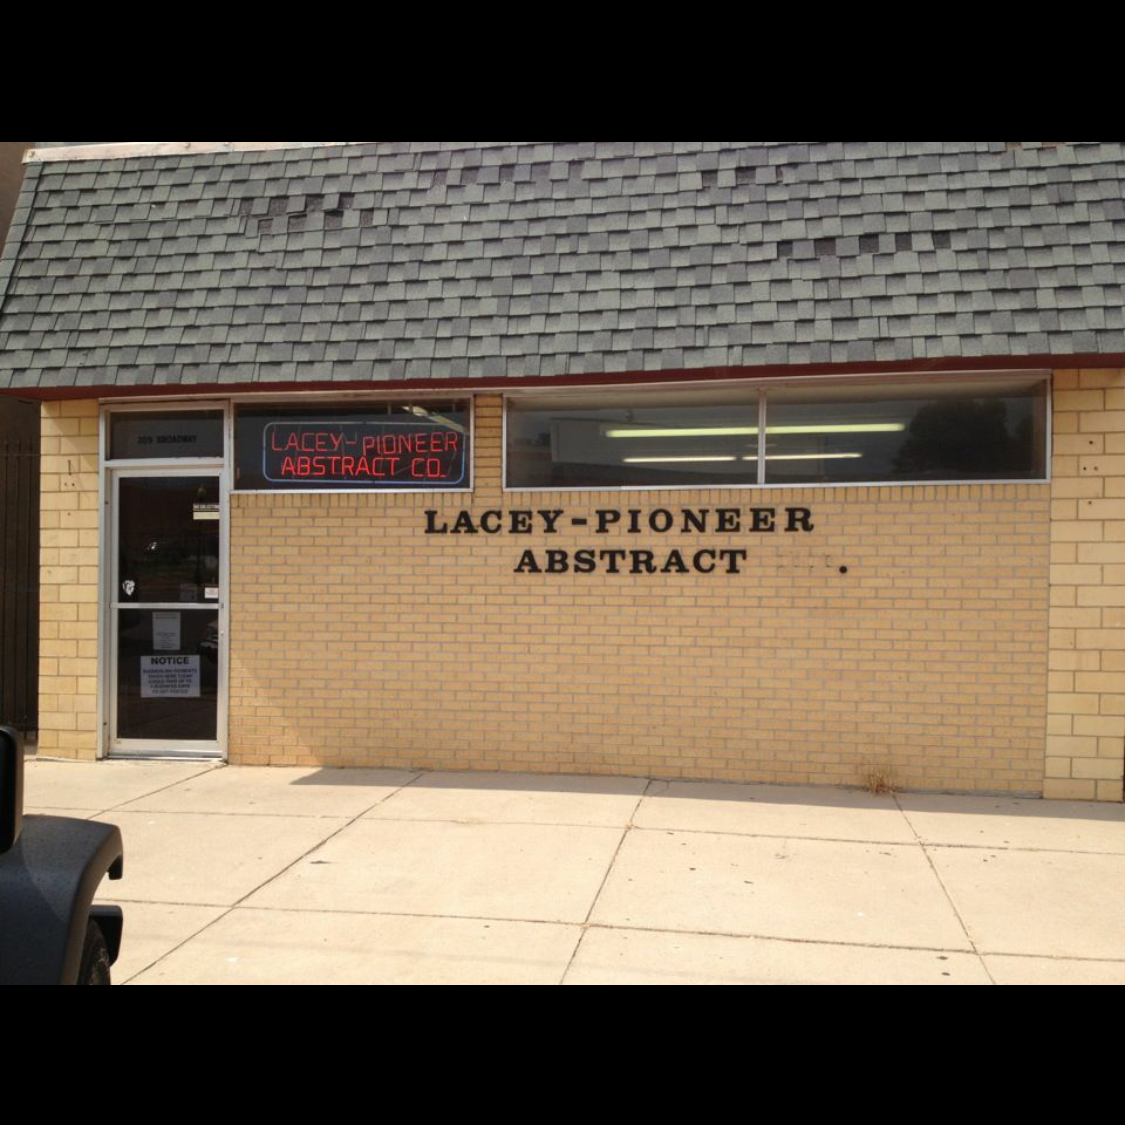 Lacey-Pioneer Abstract Company, Inc.